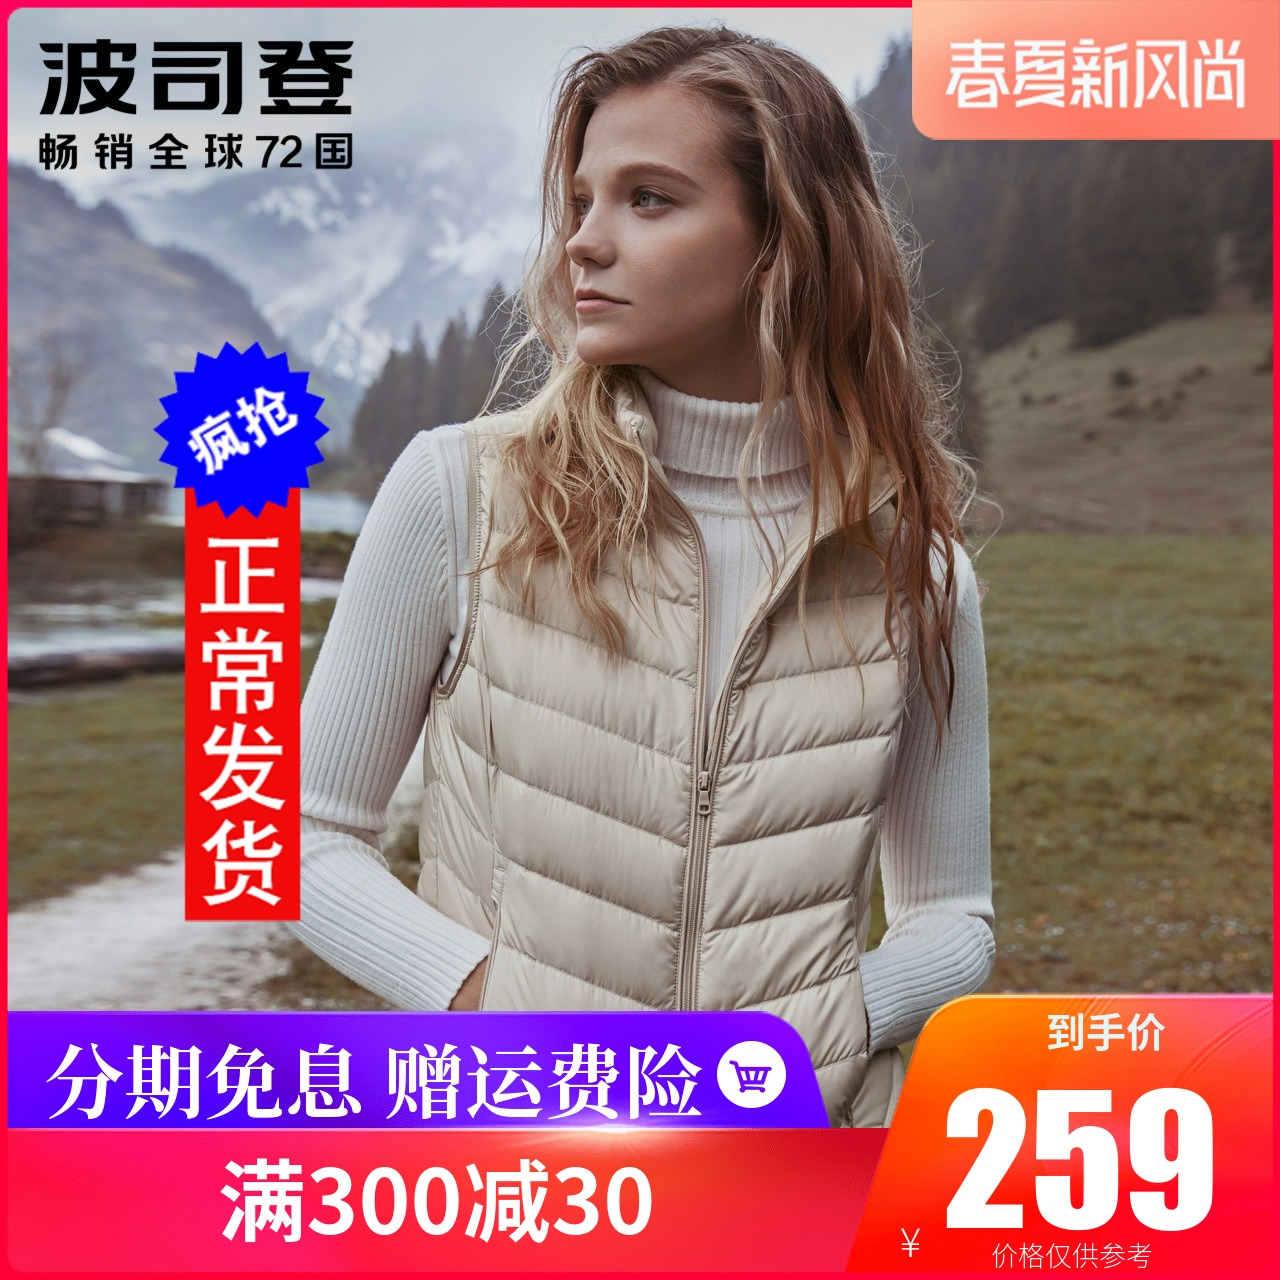 Bosden super light and thin down vest women's spring and autumn new stand collar short style leisure warm outside wear jacket fashion